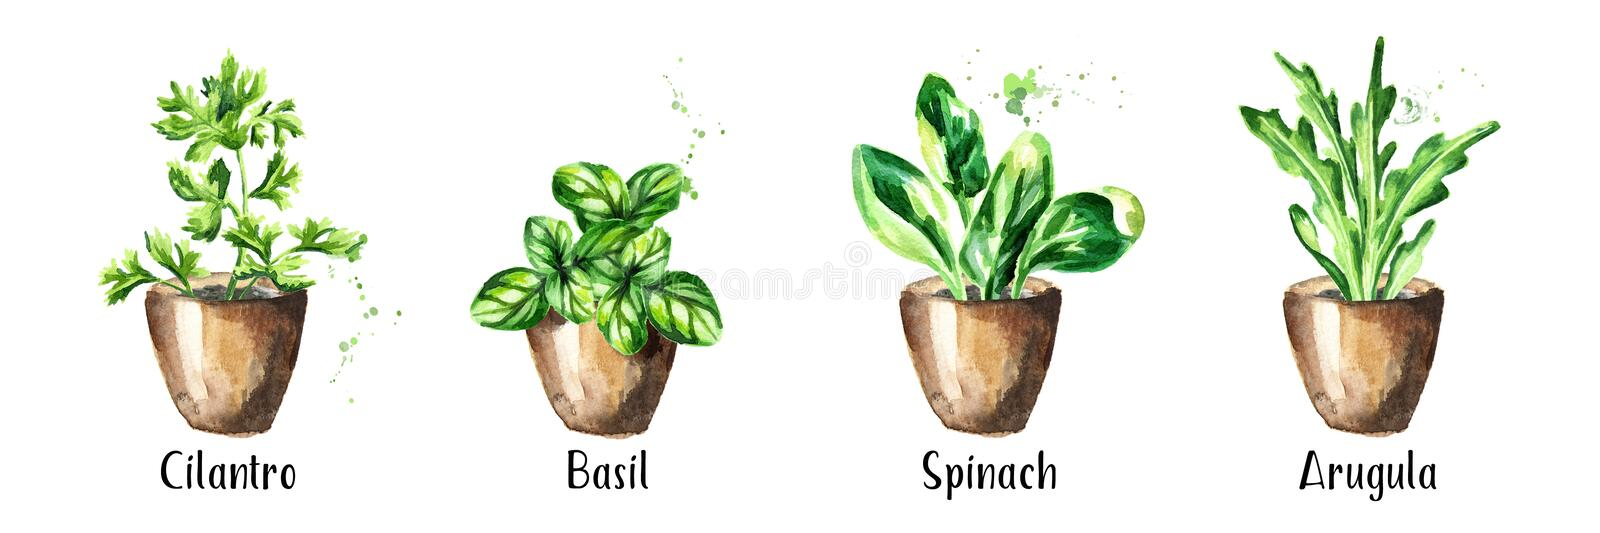 Kitchen herbs in a pots set. Watercolor hand drawn illustration, isolated on white background.  stock photo